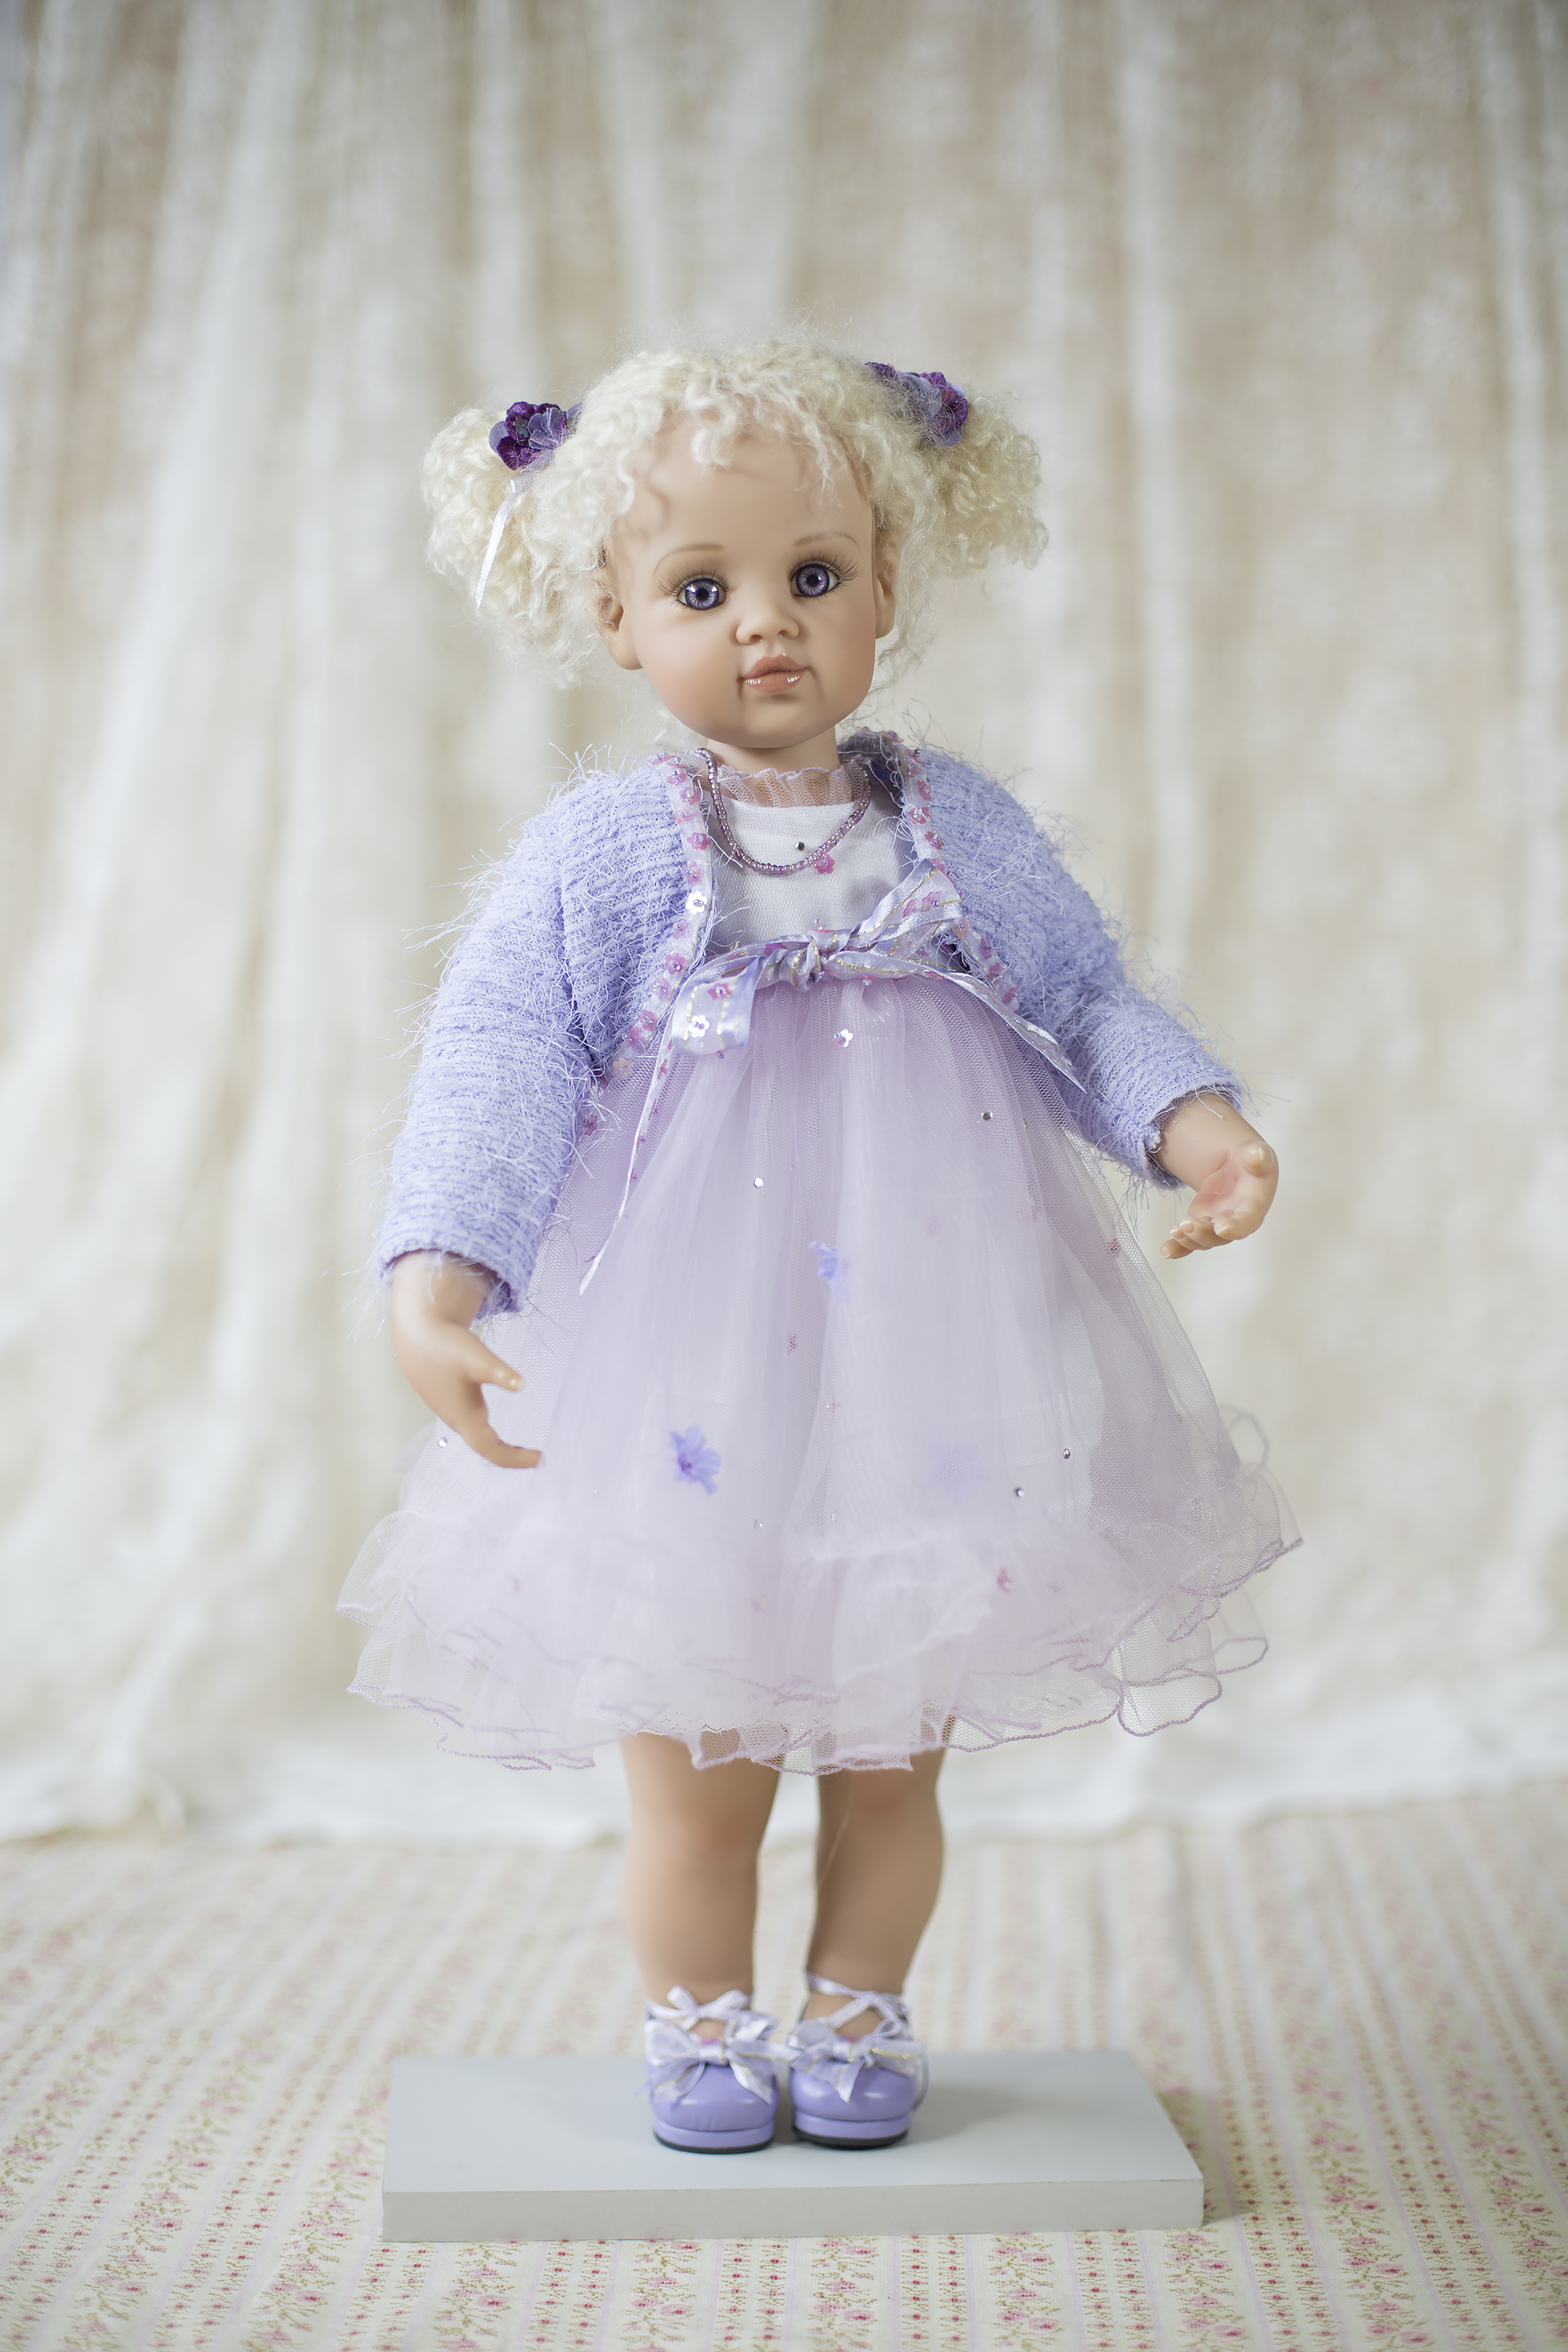 """Tiffany by  Jan McLean  2002. Limited edition 34 standing 22"""" tall. She is a vinyl collectors doll with on 3500 worldwide. """"Tiffany brings out the parent in me"""" says Judith who loves her soft lavender dress with layers of sequinned and flower trimmed tulle wearing delightful lavender shoes. Her little fluffy sweater is also trimmed with sequins and she has velvet flower's in her blonde mohair curls with a cute little innocent face.She has a lovely crystal necklace with gorgeous piercing violet eyes, you just cant take your eyes off her."""